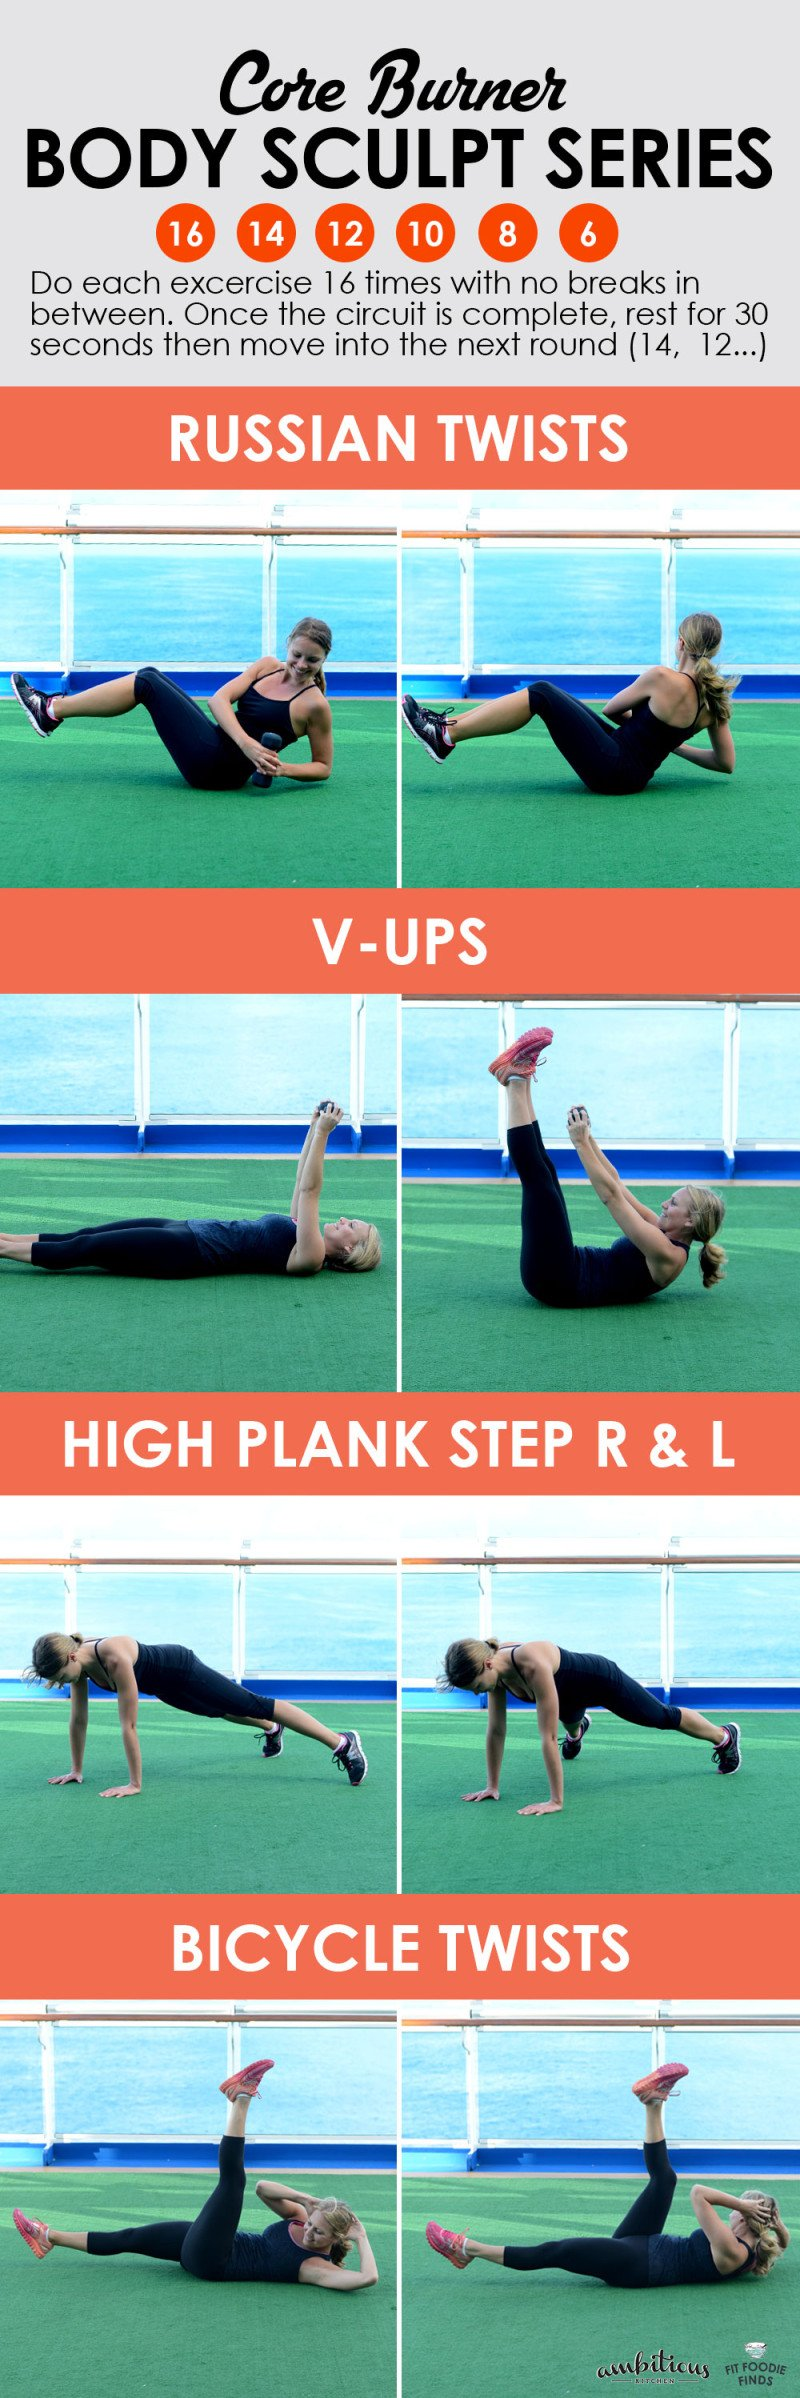 This 15 minute ab workout collage